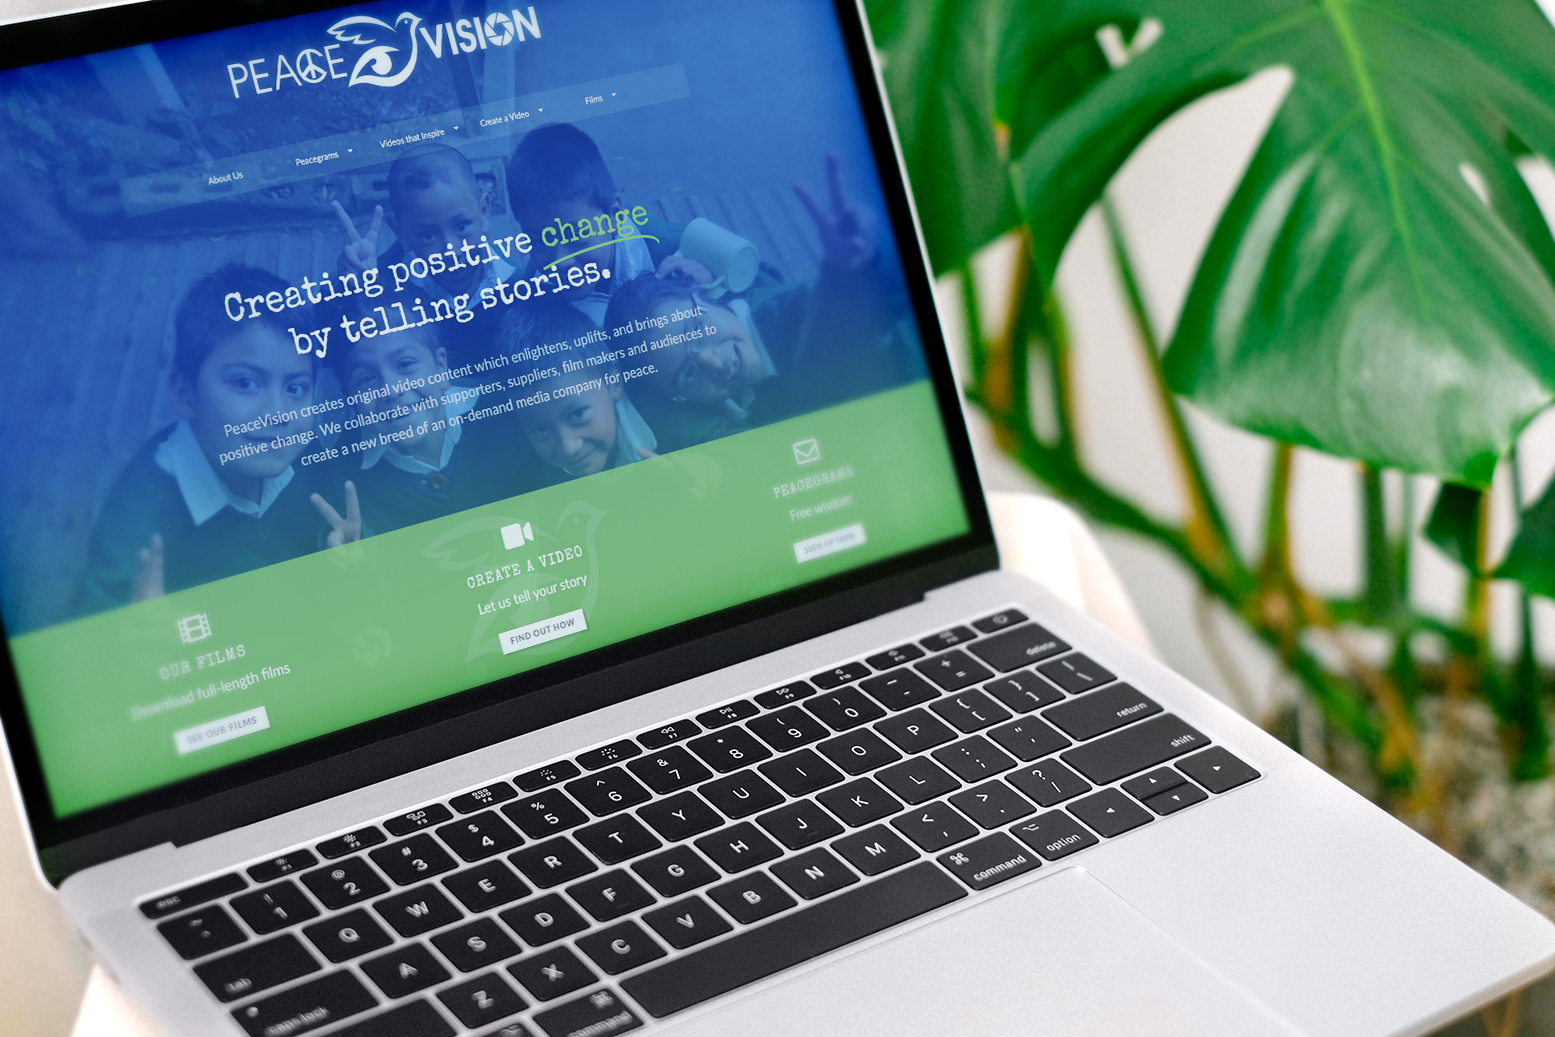 PeaceVision Website Project